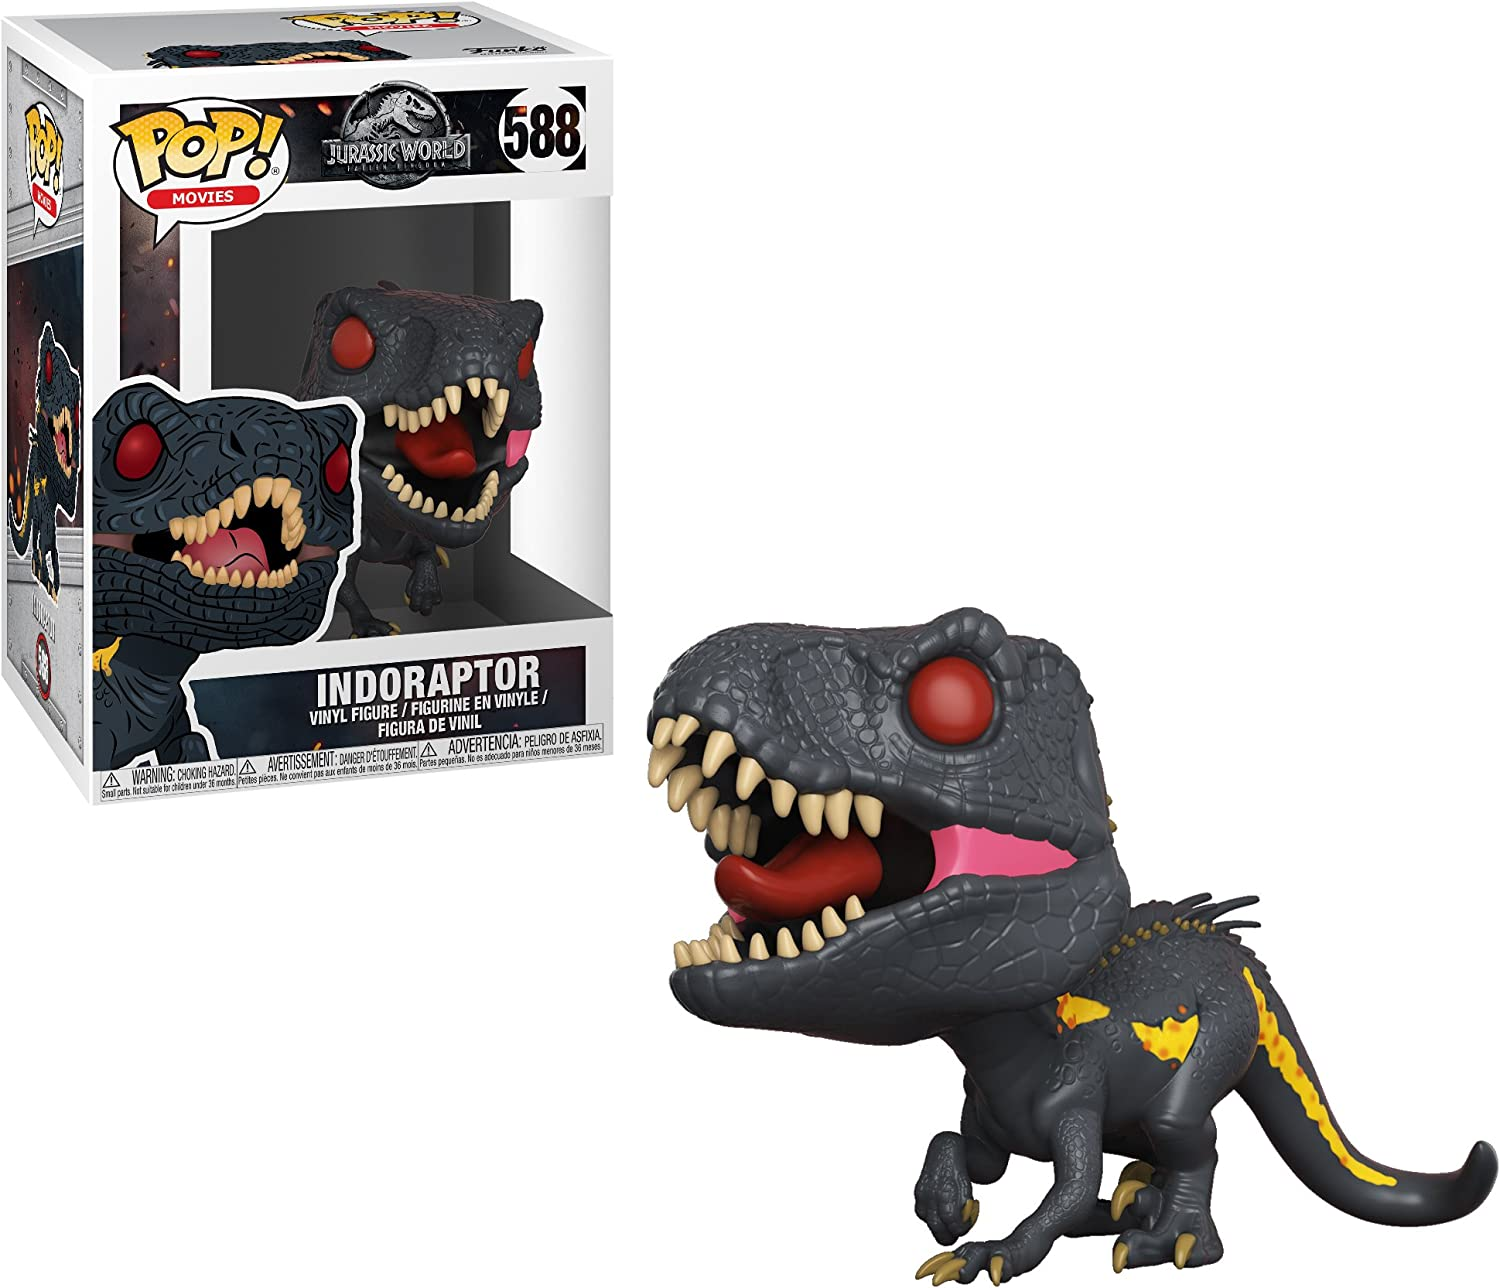 Pop Vinyl Vinyl--Jurassic World 2: Fallen Kingdom Stygimoloch Pop